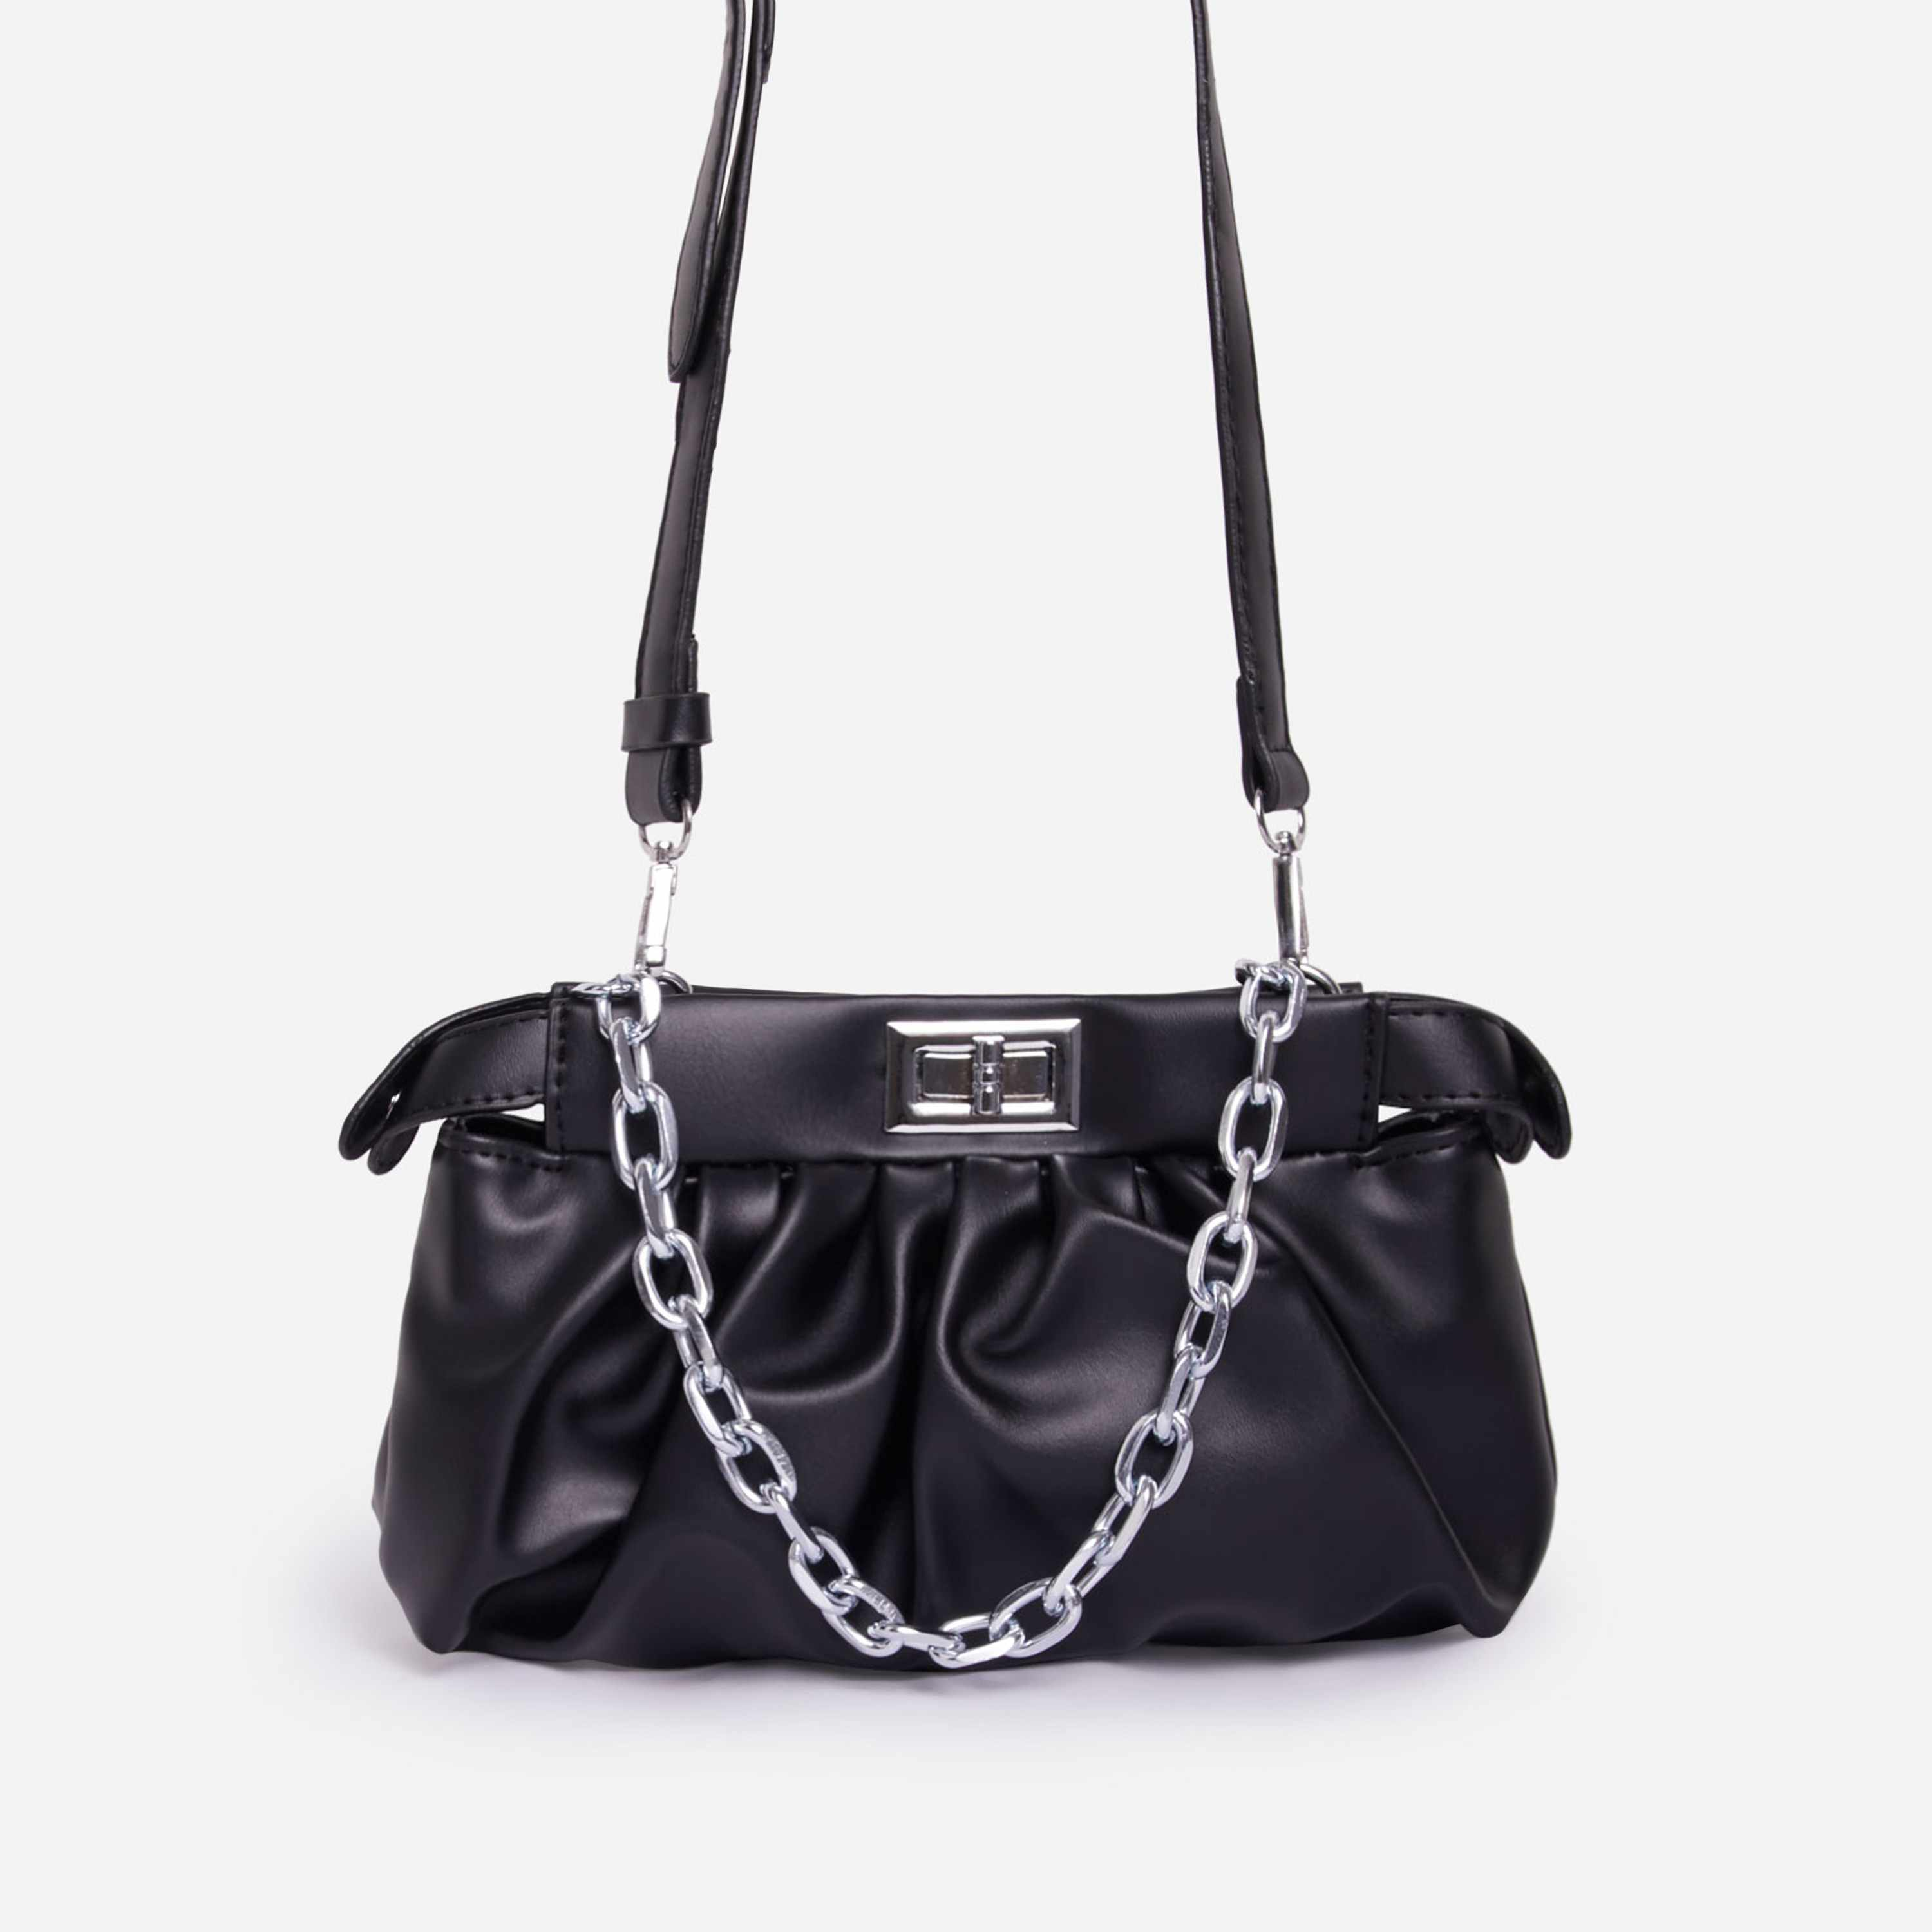 Royal Chain Detail Ruched Cross Body Bag In Black Faux Leather